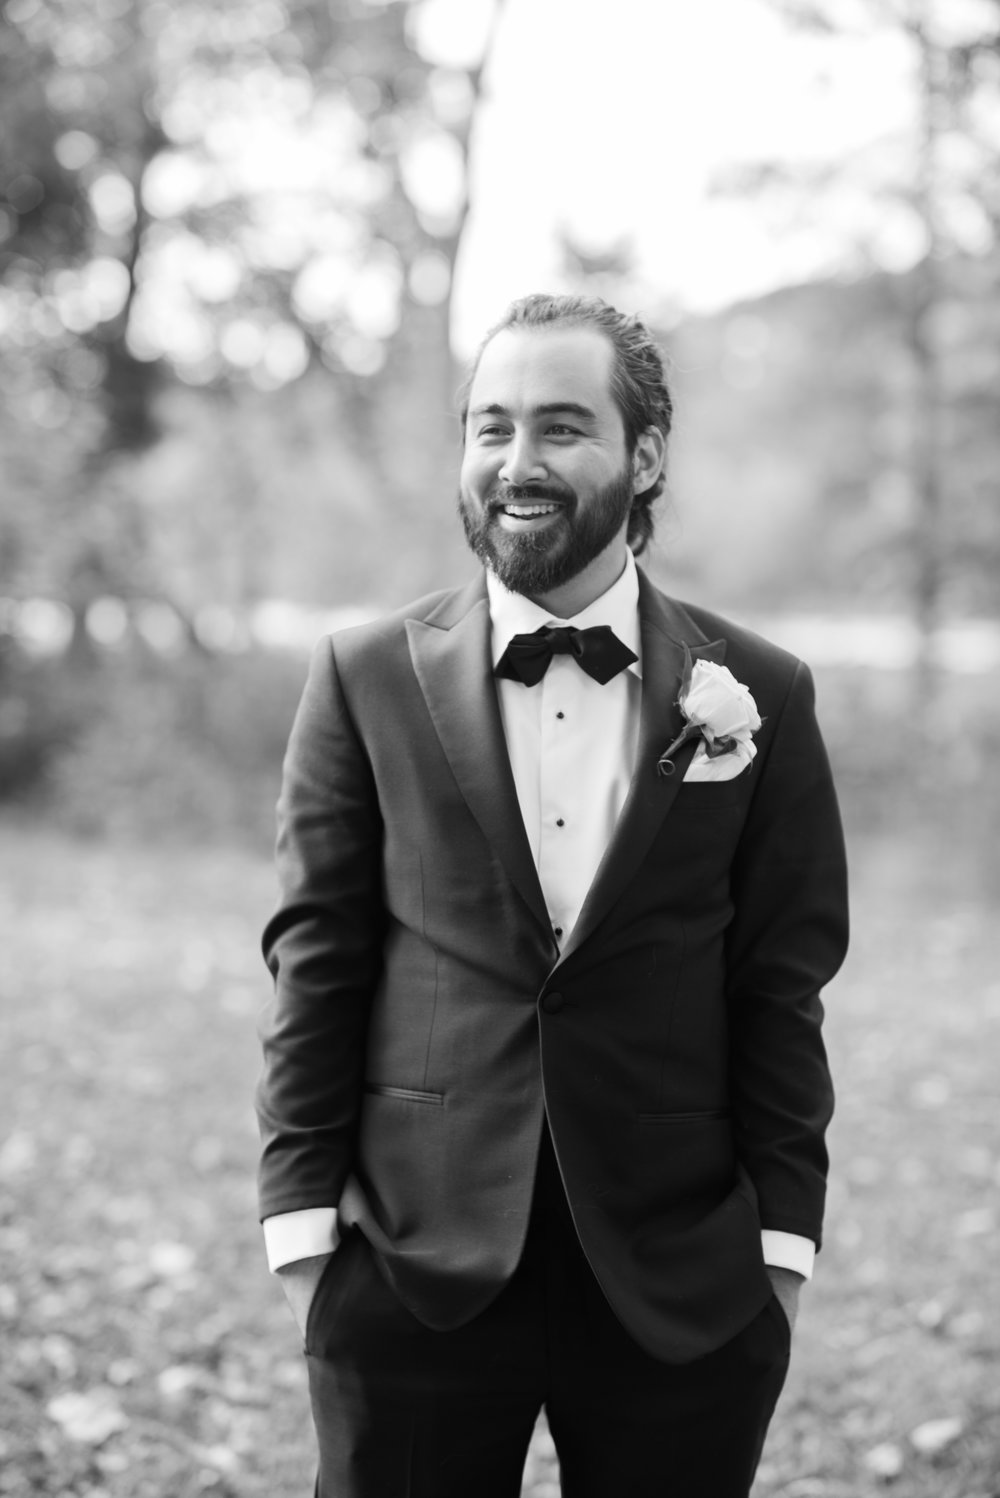 Groom portrait, Groom wearing Tuxedo, Tuxedo rental, rented Tuxedo, handsome groom, wedding day, black and white photo, black and white photo of groom, groom with dreadlocks, turkish groom, prospect park, prospect park wedding day photo, prospect park groom photo